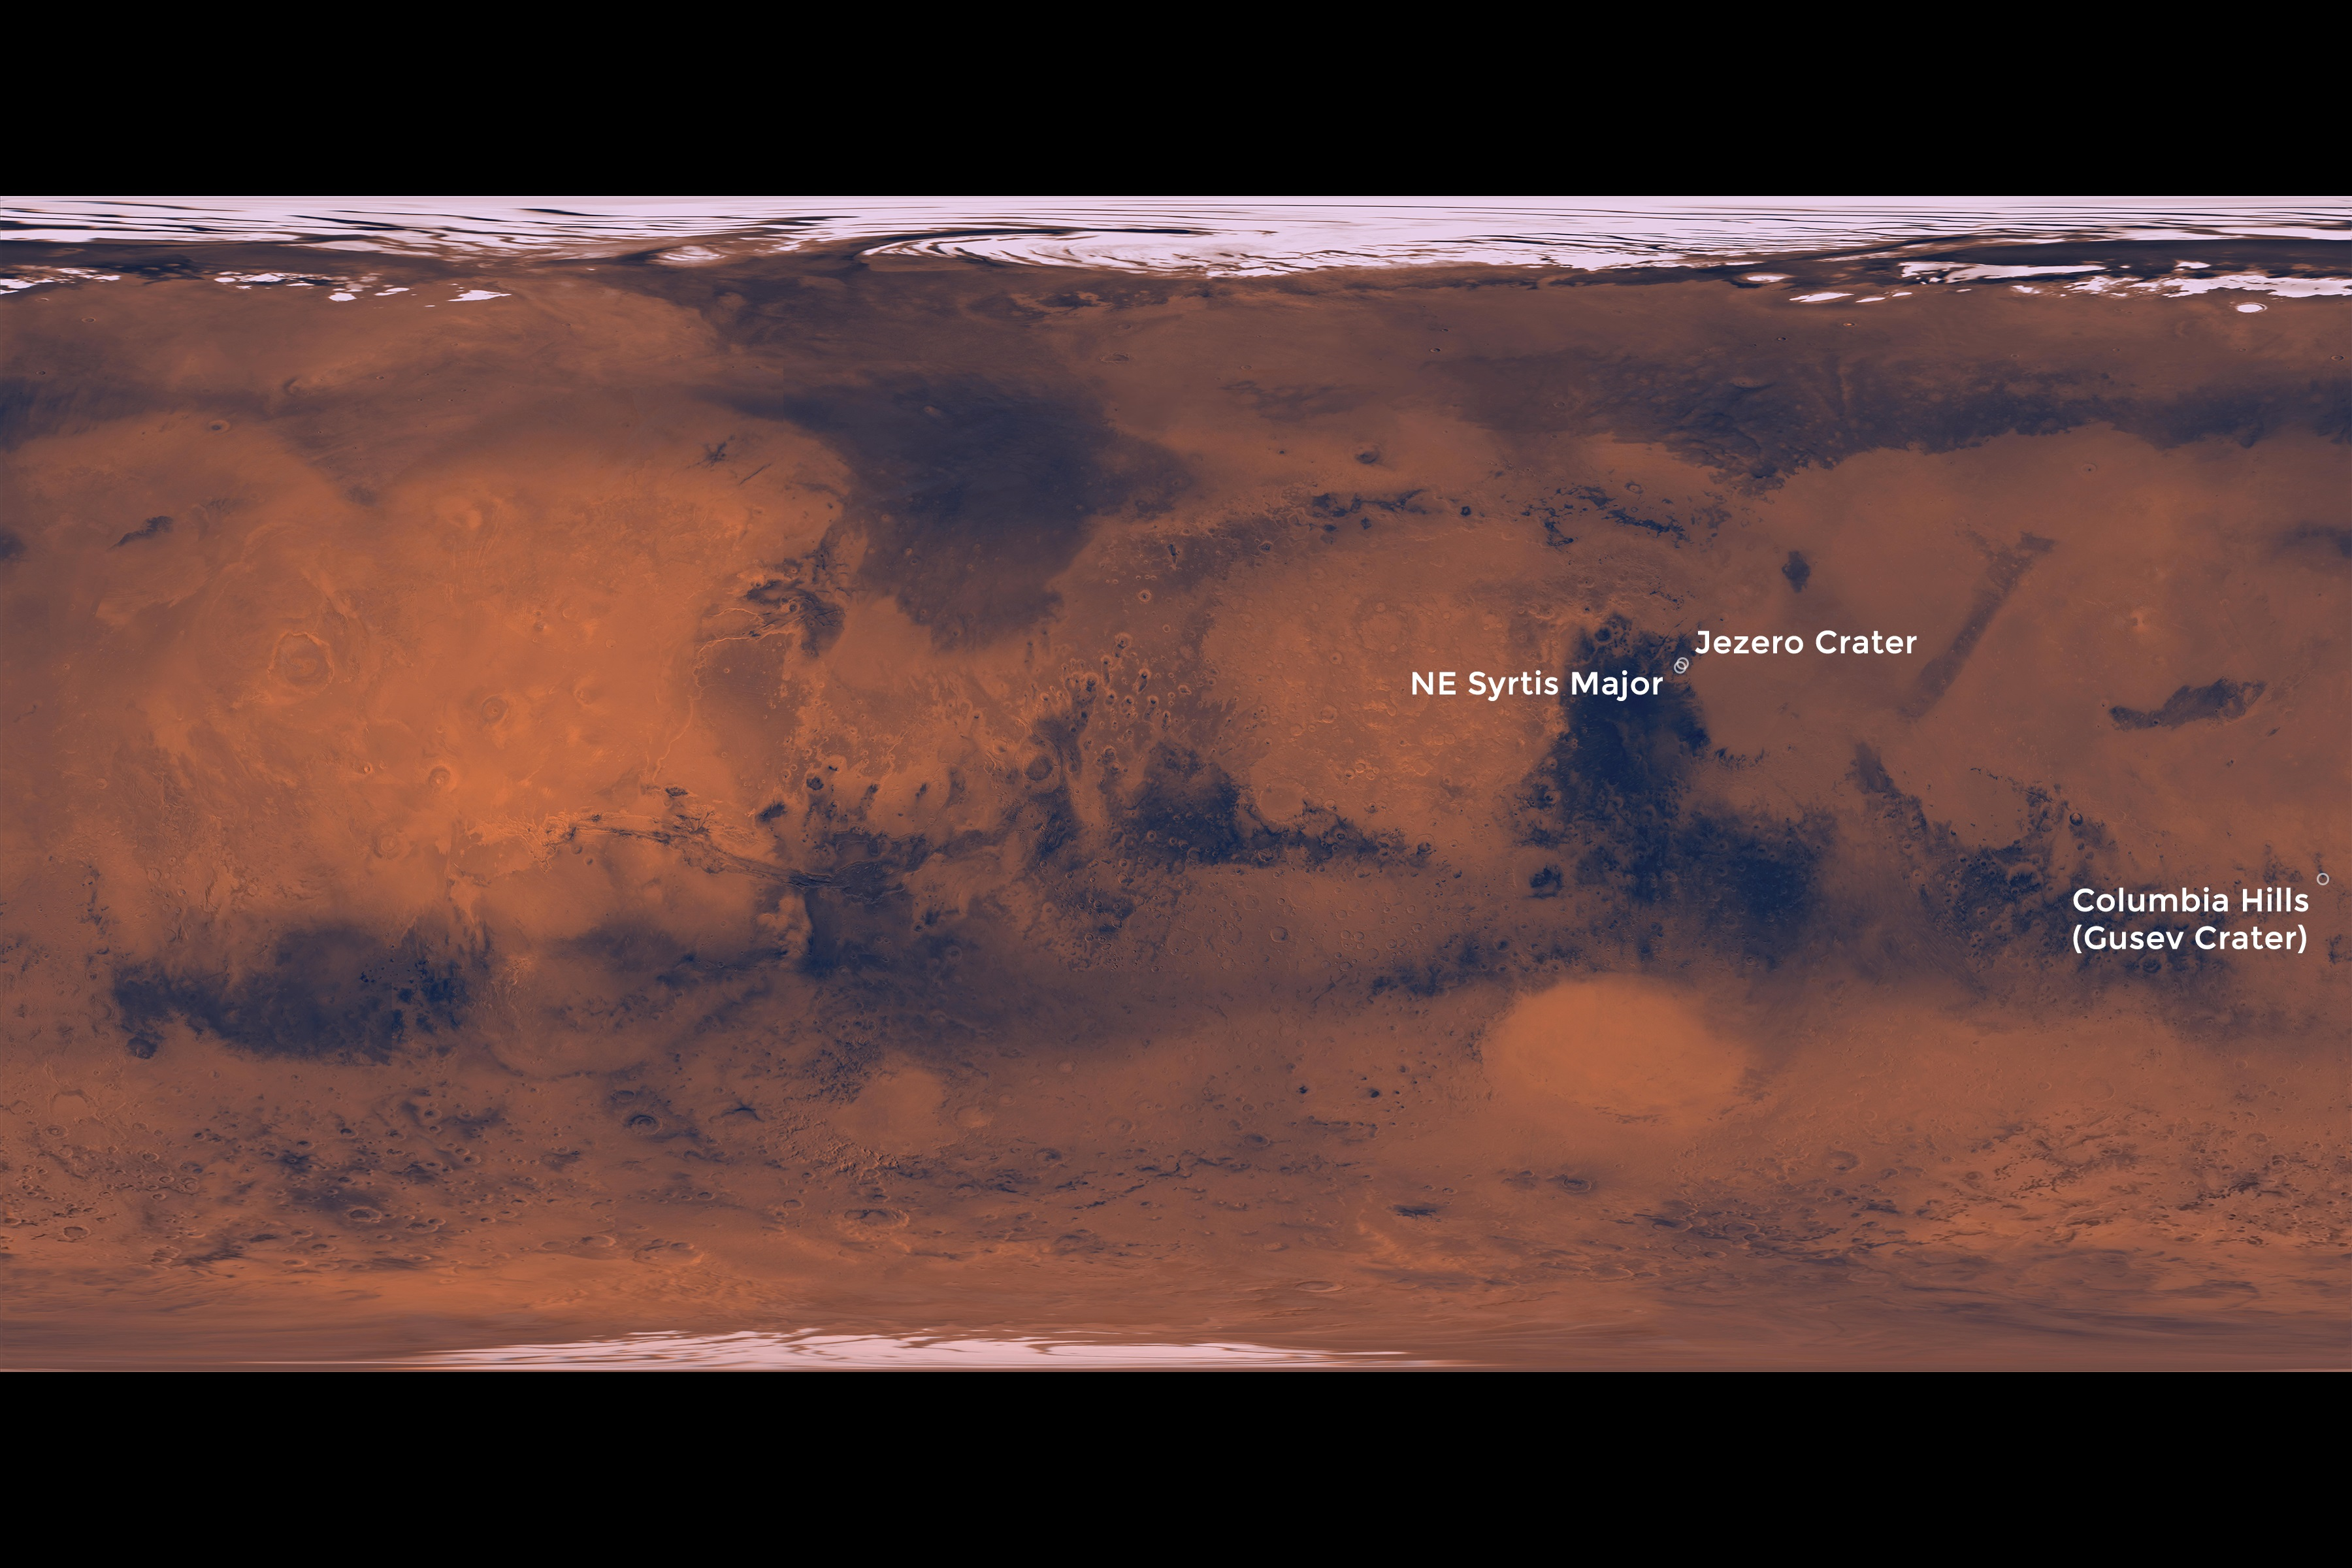 Landing Sites for 2020 Mars Rover: NASA Weighs 3 Options